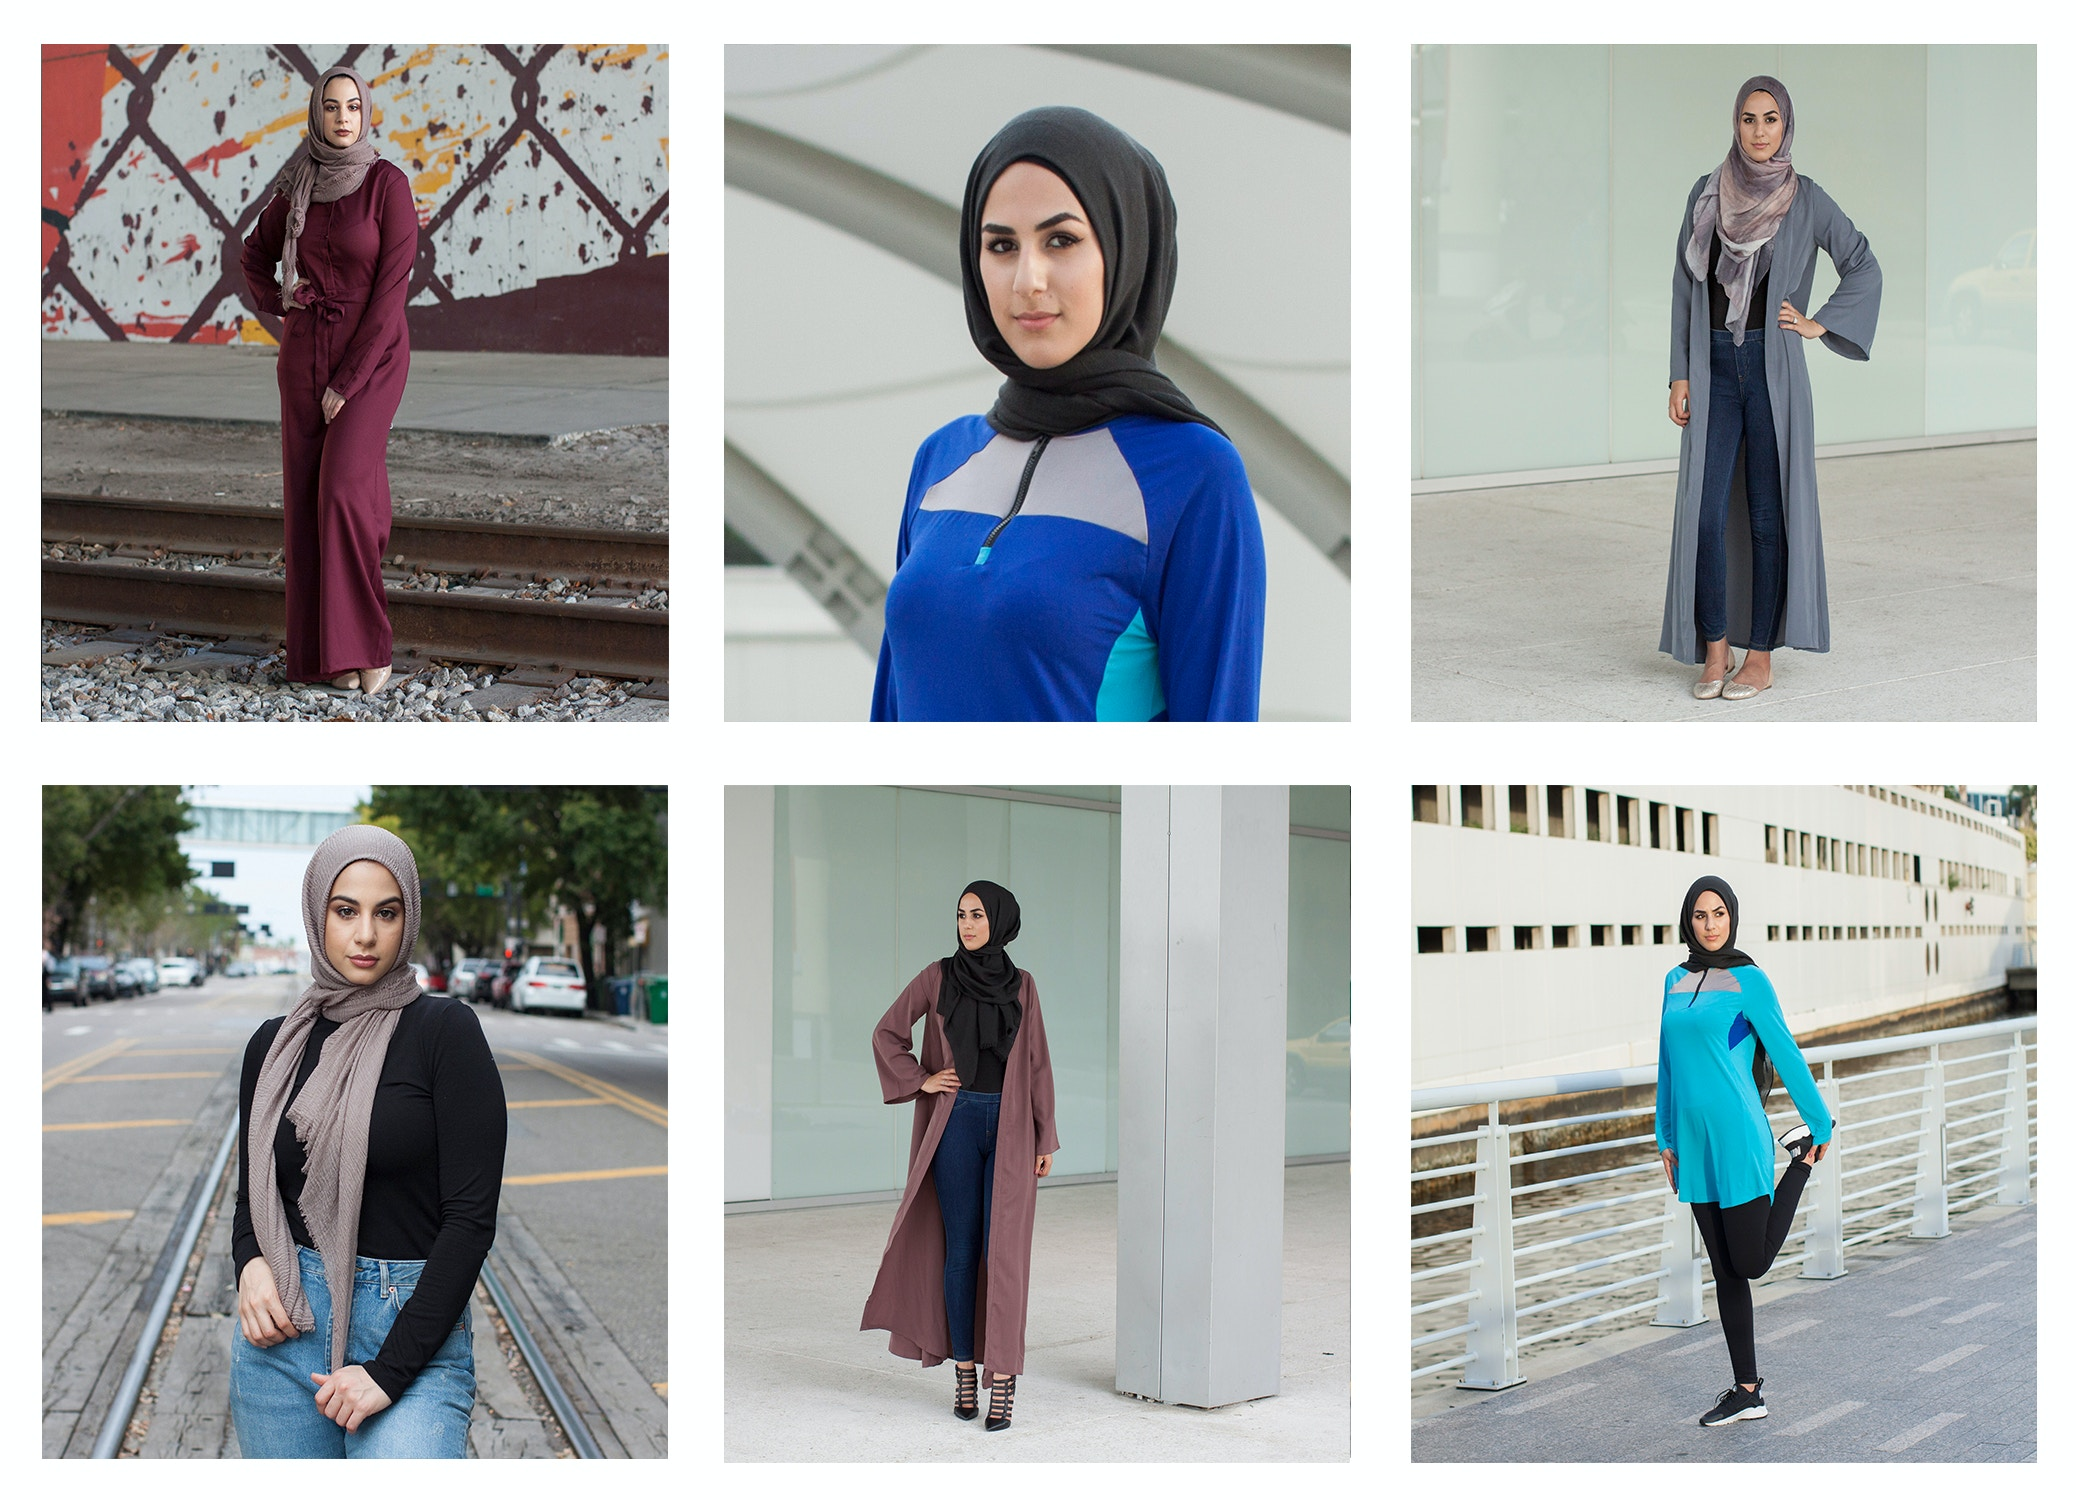 73c53889af0e Hijabs and Modest Clothing Are Trump Era's Corporate Trend